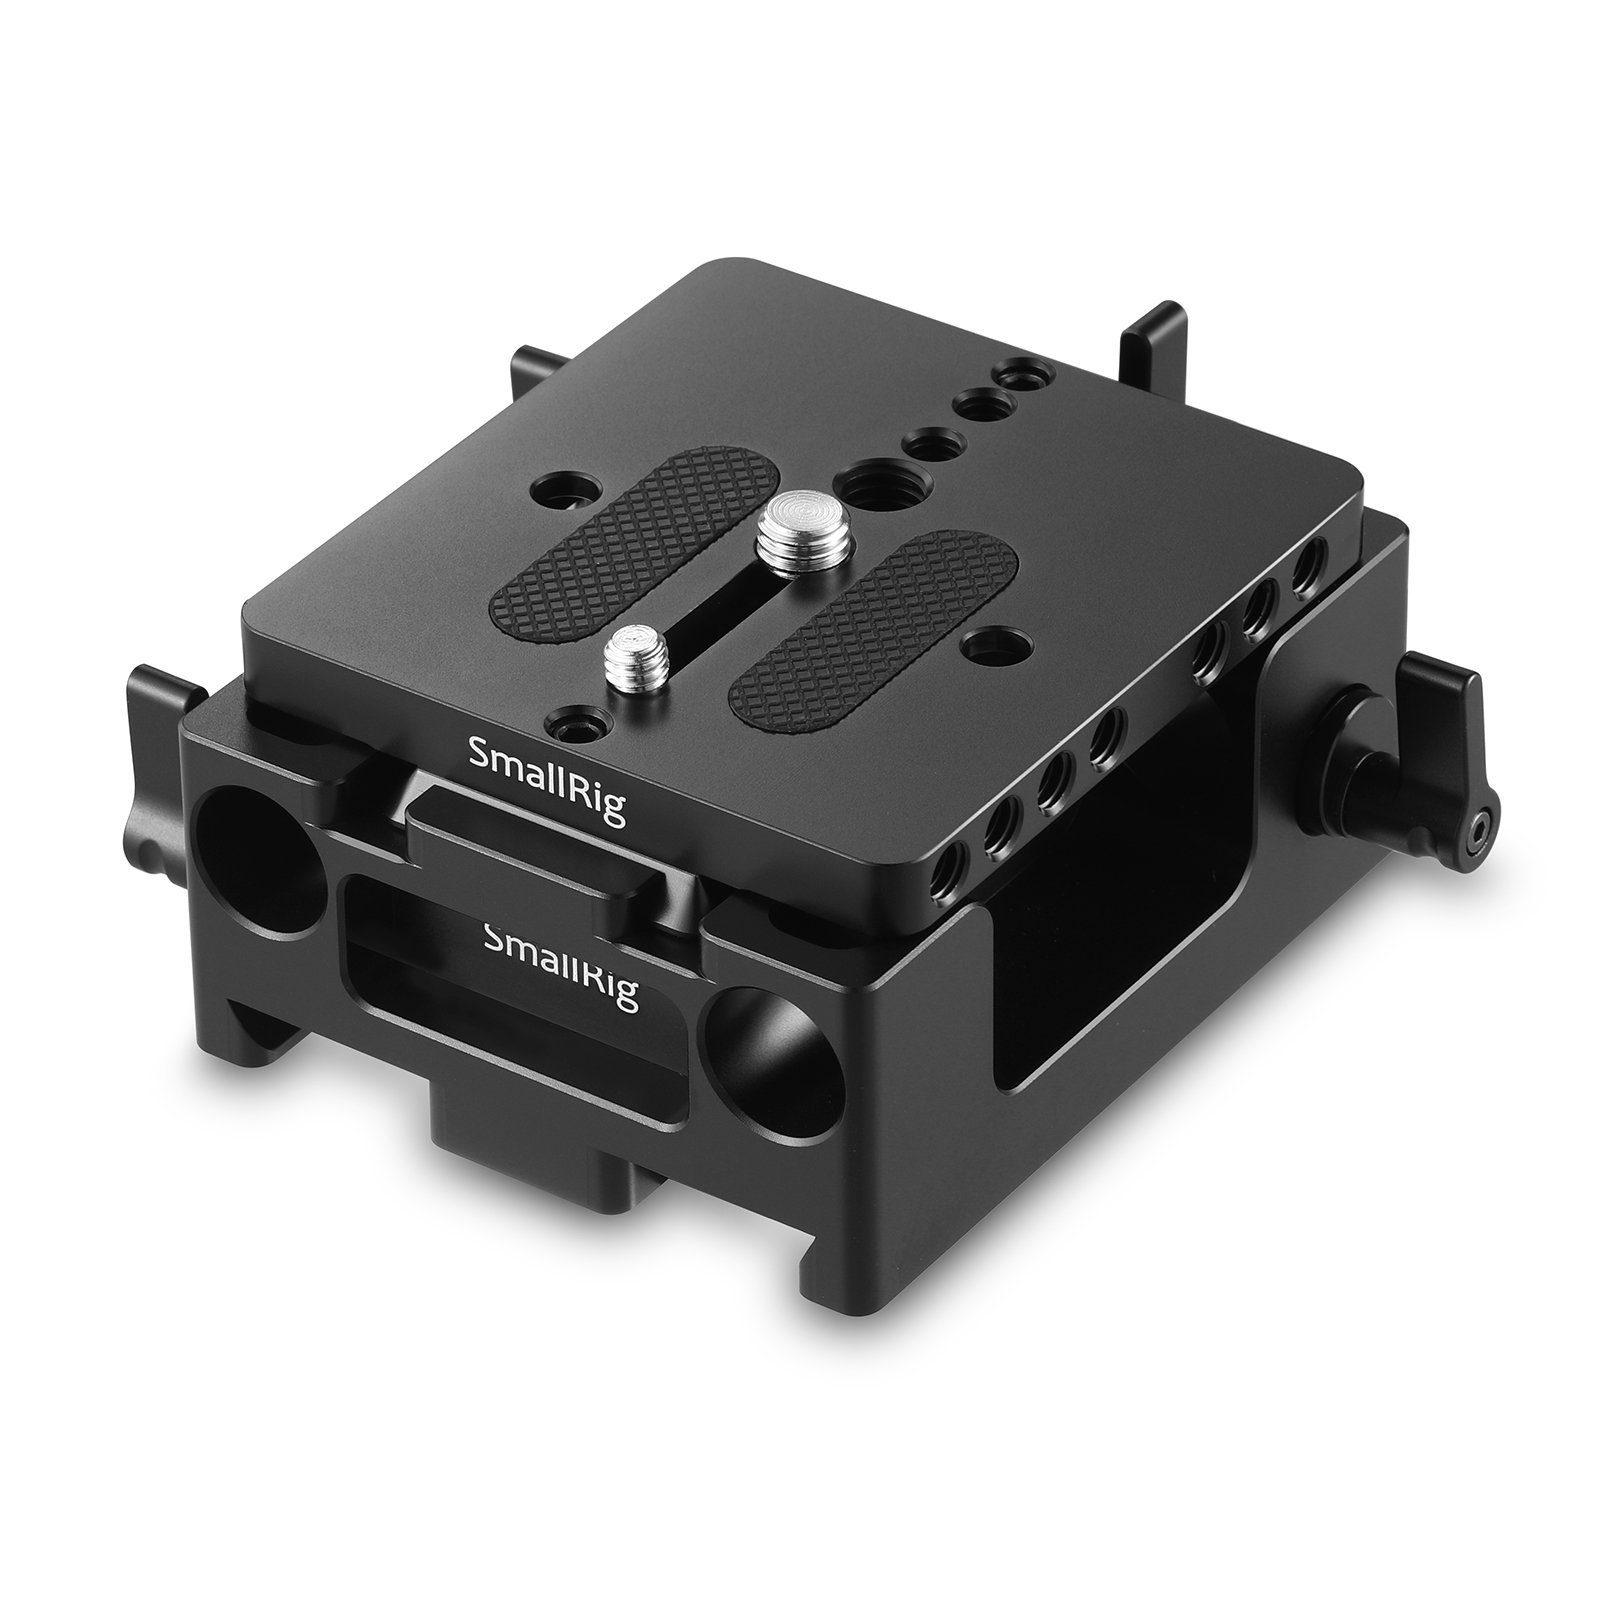 SMALLRIG Baseplate for Canon C200 and C200B with QR Plate for Arca and Dovetail for Arri–2076 by SMALLRIG (Image #1)